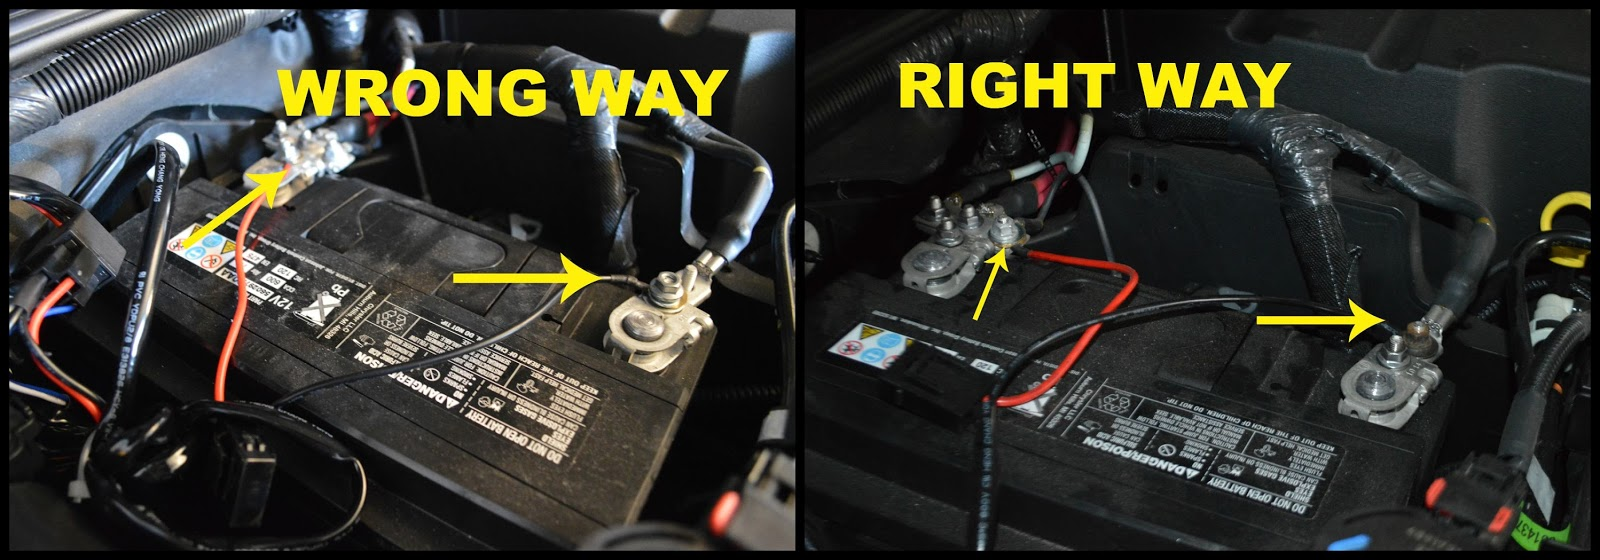 Abs Light And Traction 2014 Jku Jeep Wrangler Wiring For Lights Name Collage Views 5388 Size 1917 Kb